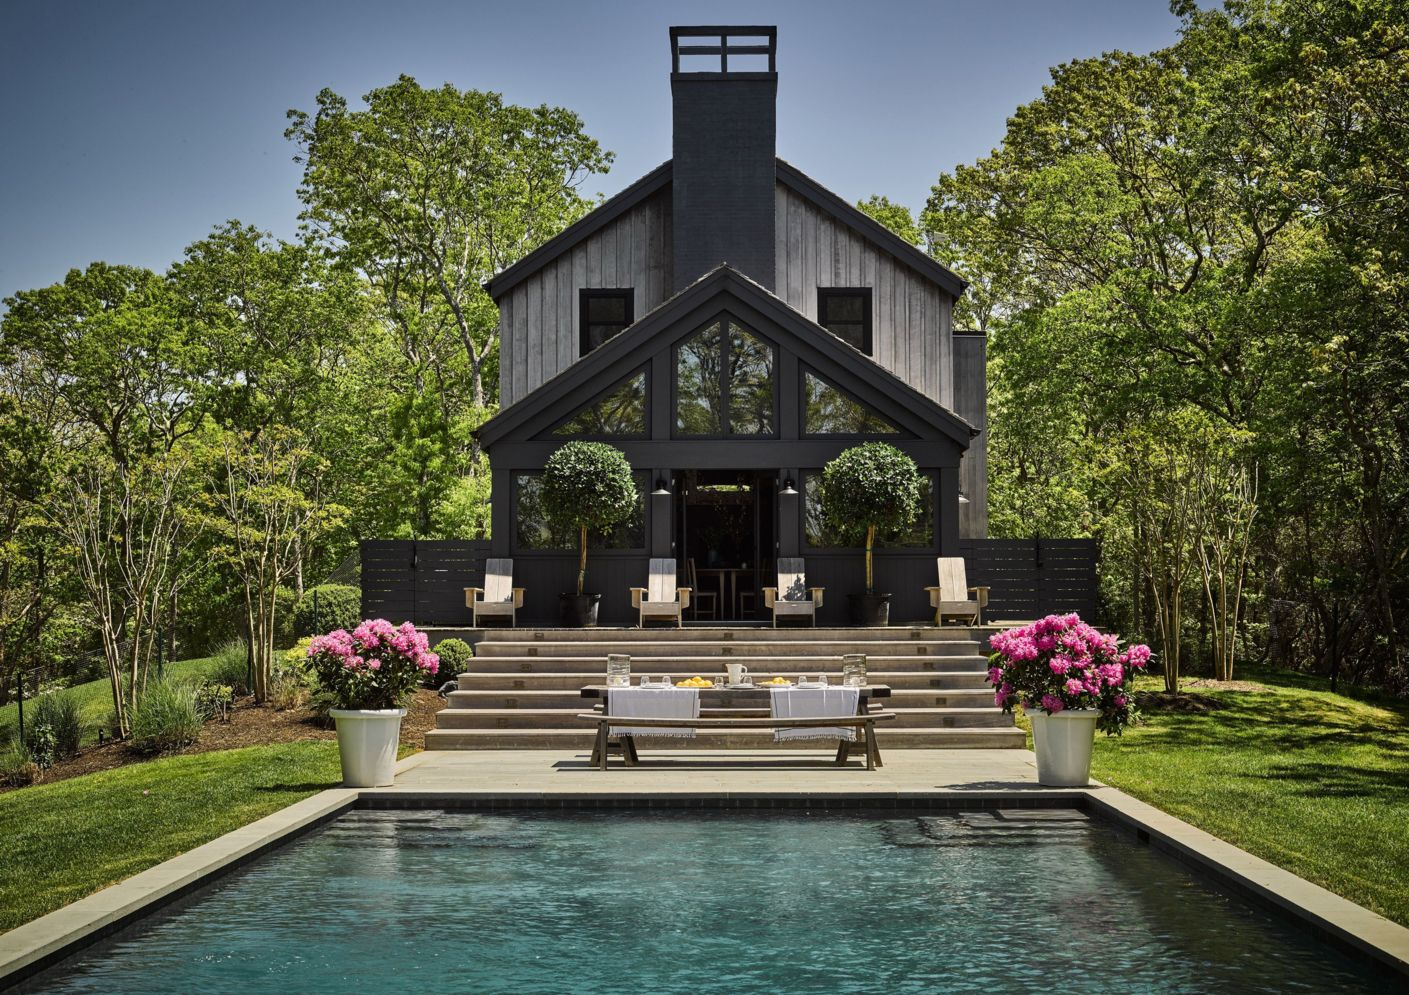 Modern house with new farmhouse exterior design pulling out country charm and warm welcoming display Image 35